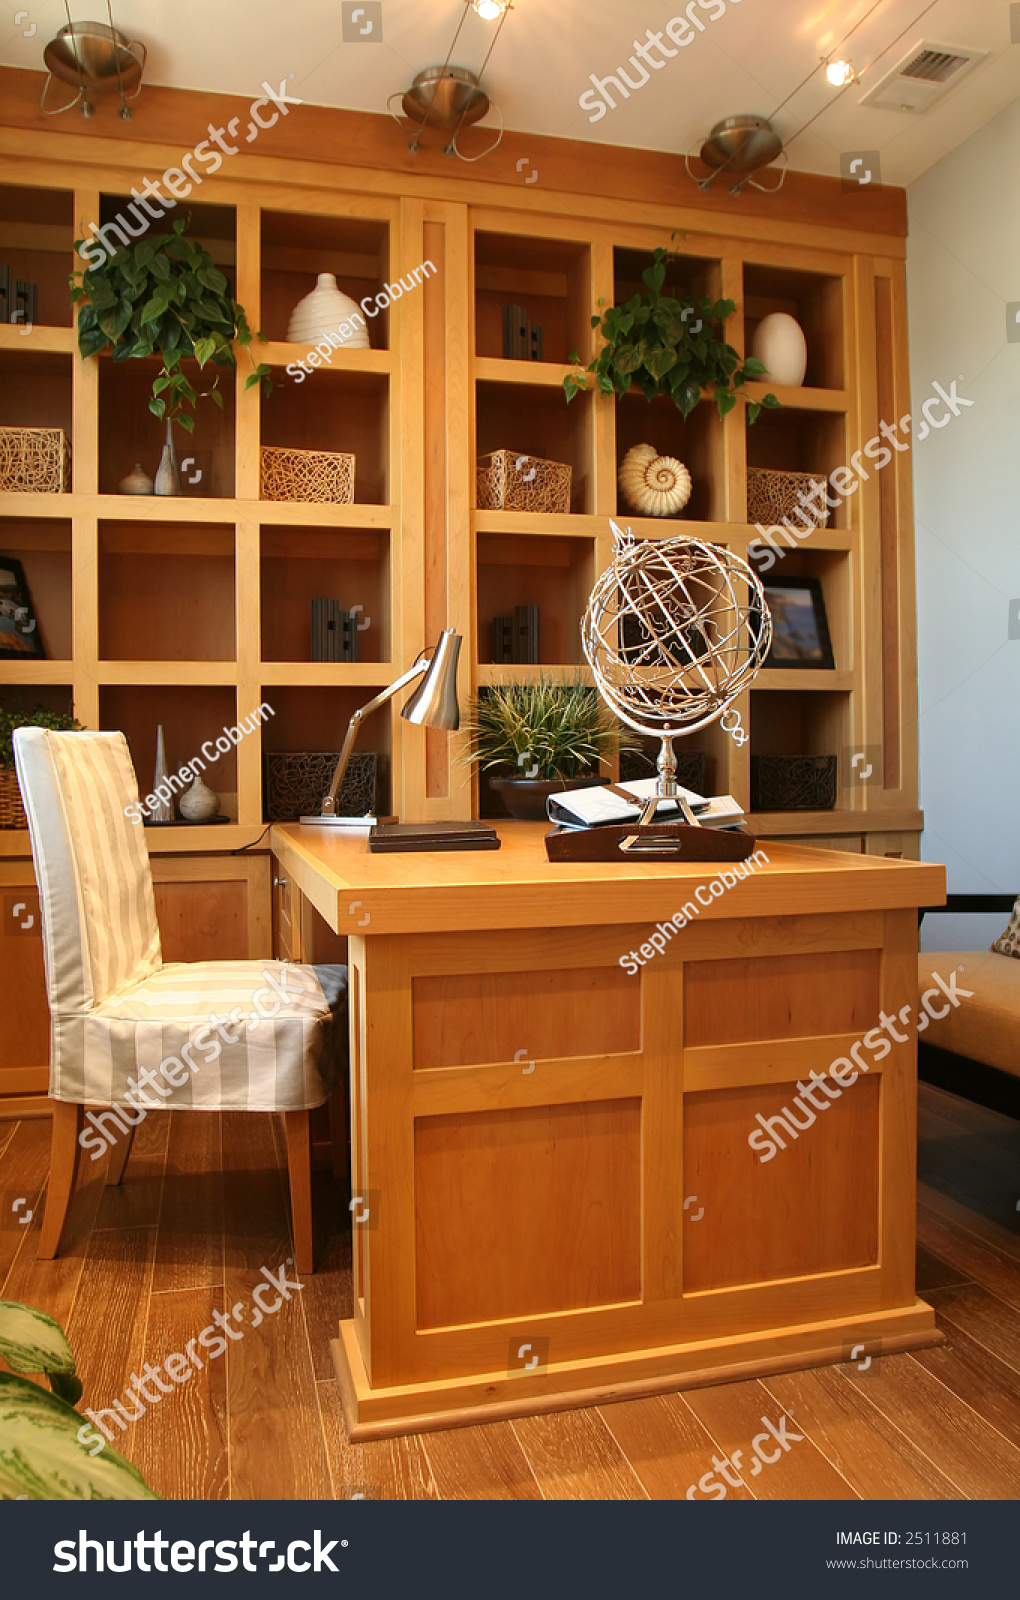 A beautiful home office interior in an upscale home stock photo 2511881 shutterstock - Beautiful home office interior ...